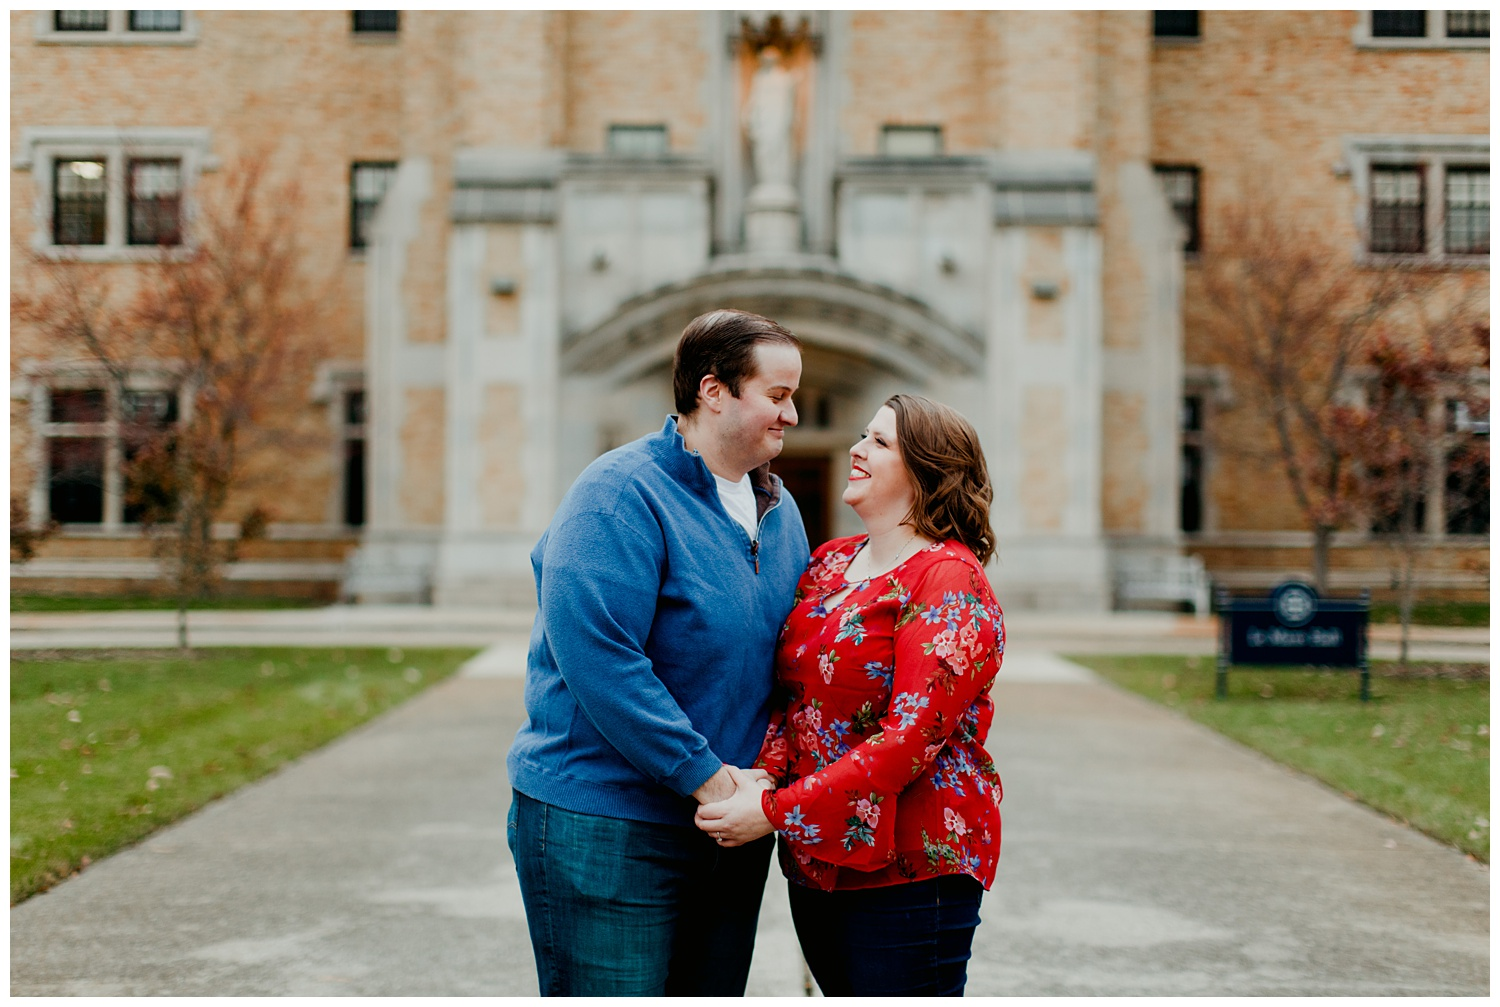 Saint mary's college campus wedding photographer southbend mishawaka granger3.jpg